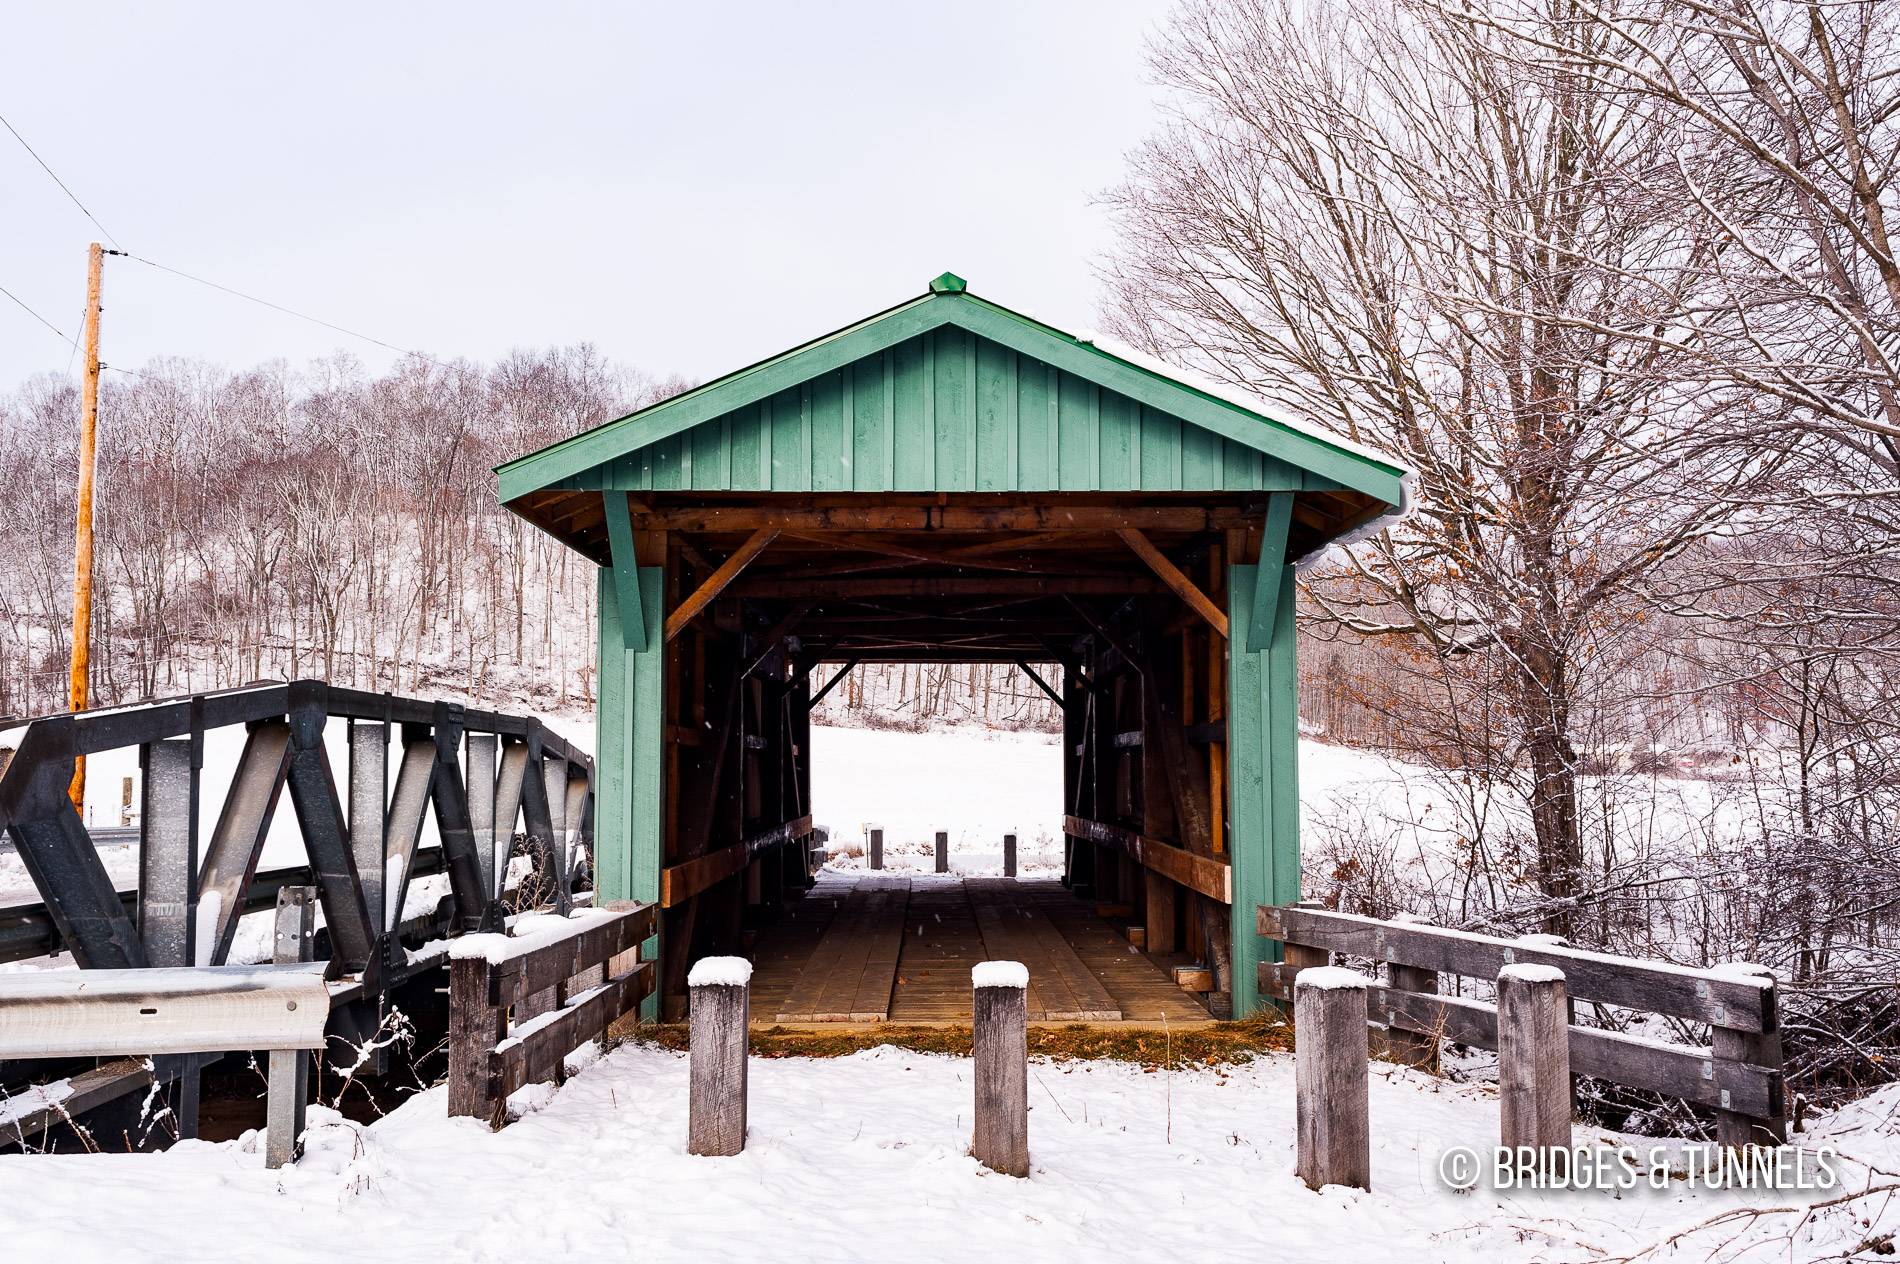 Mt. Olive Road Covered Bridge